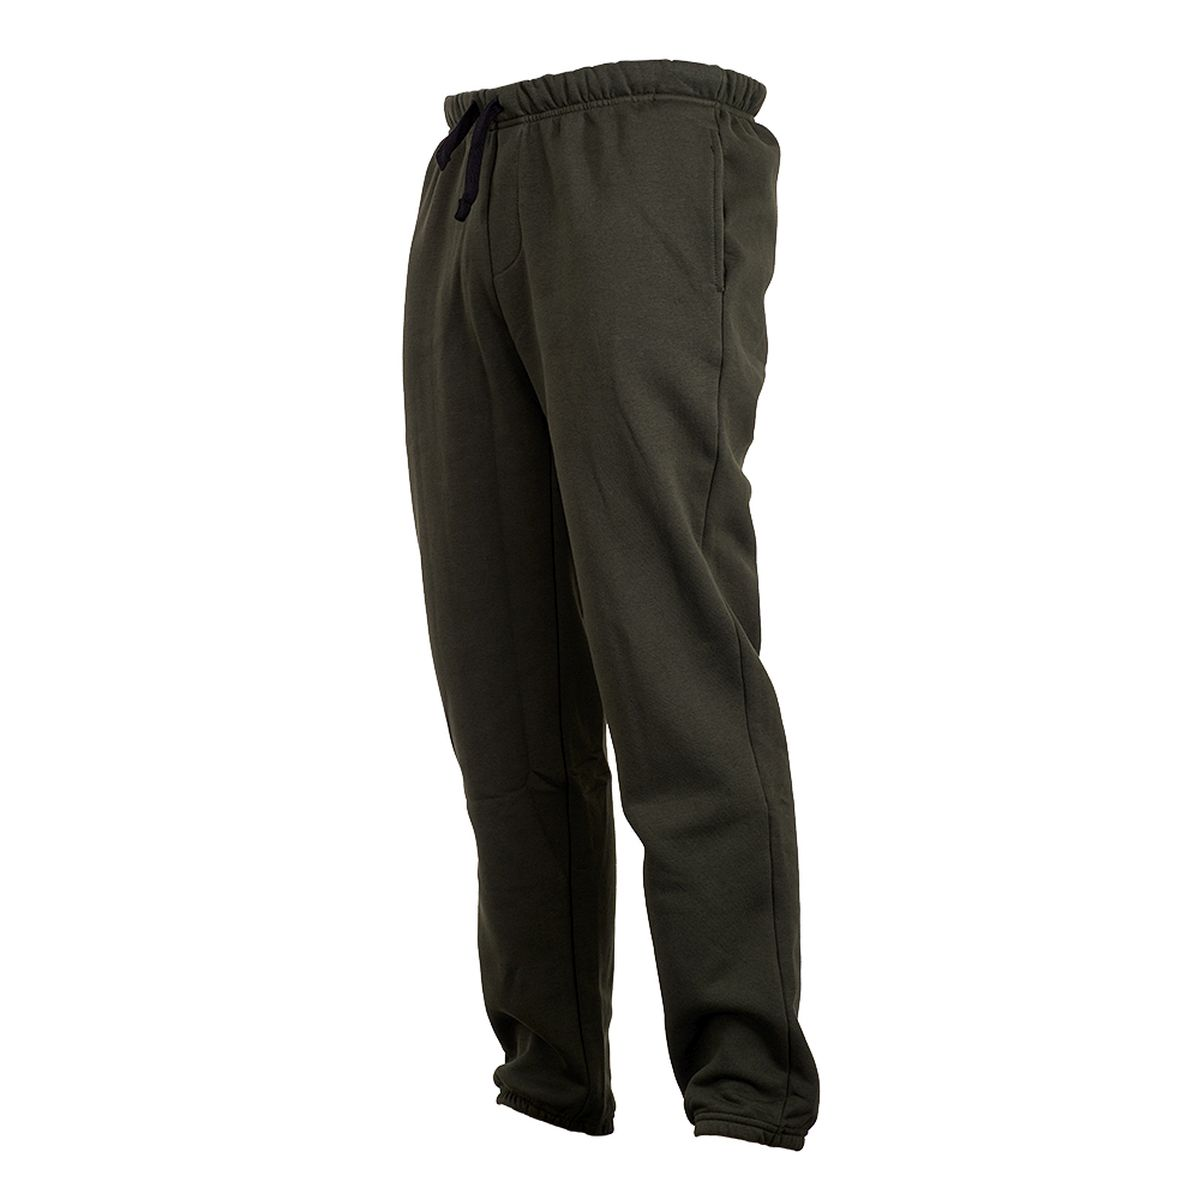 CARPSTYLE Bank Joggers - S